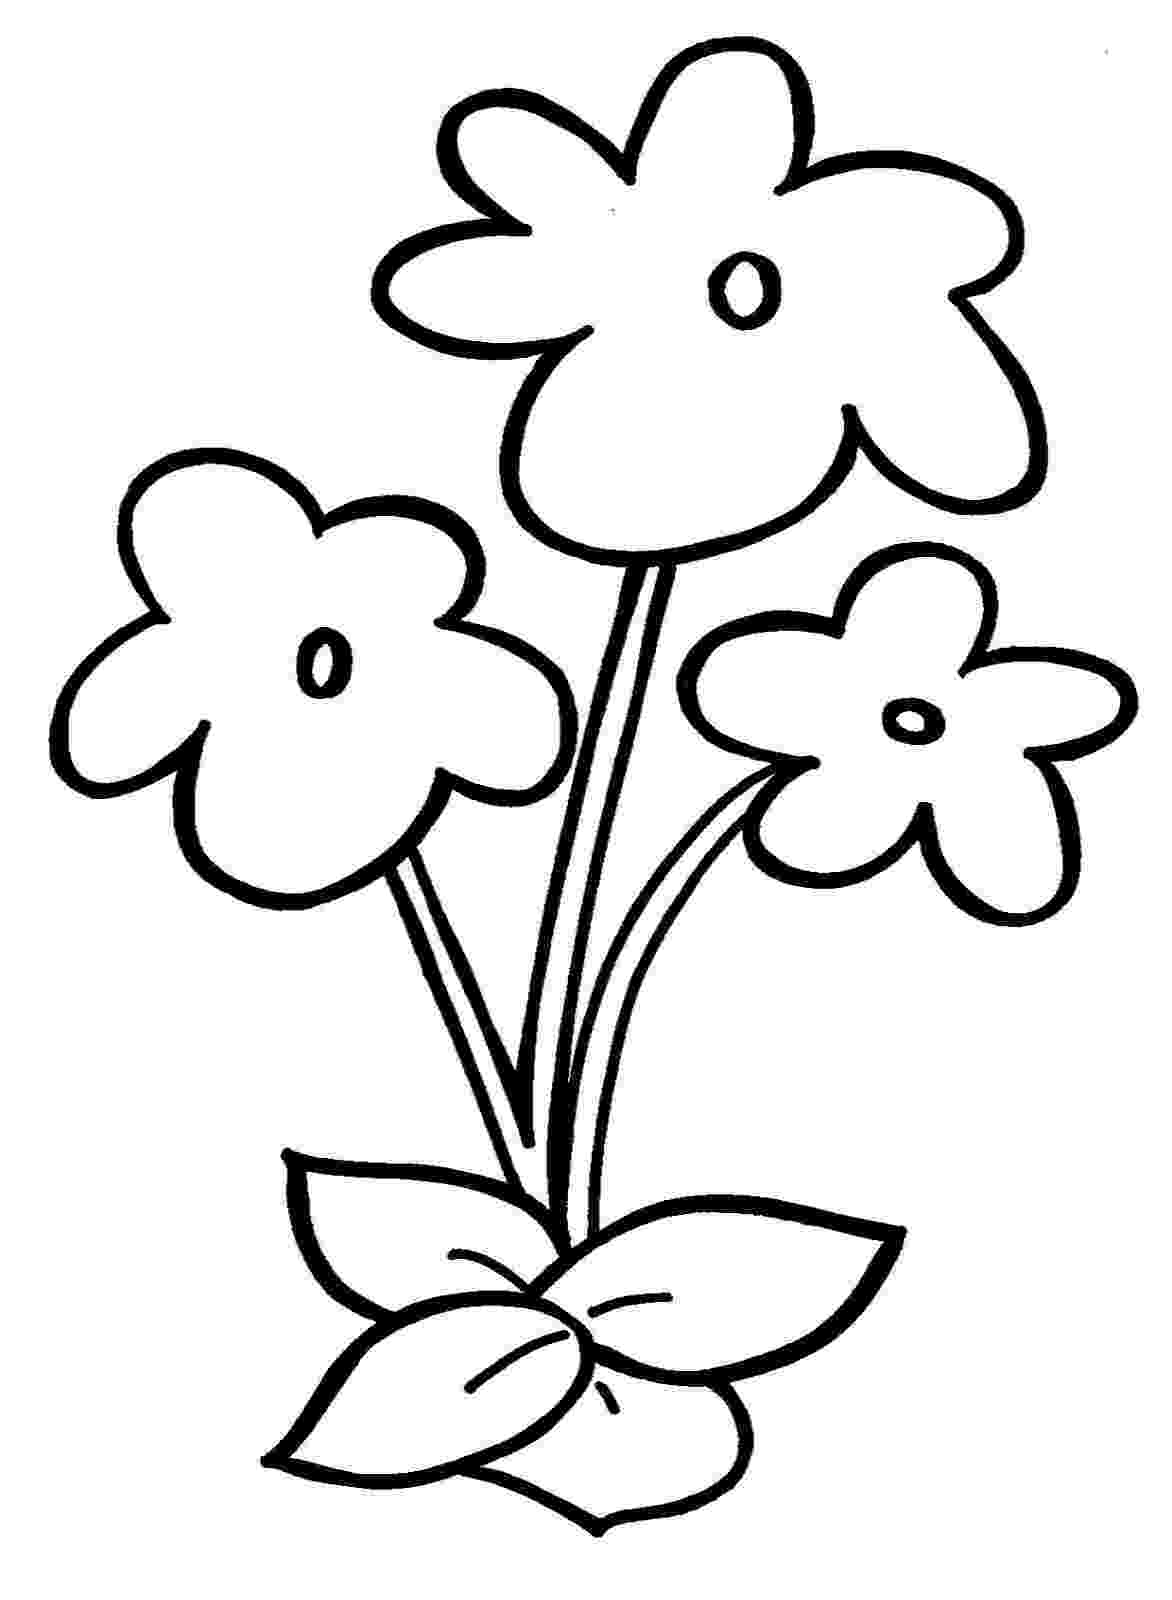 flower images to color flowers free to color for kids flowers kids coloring pages flower to images color